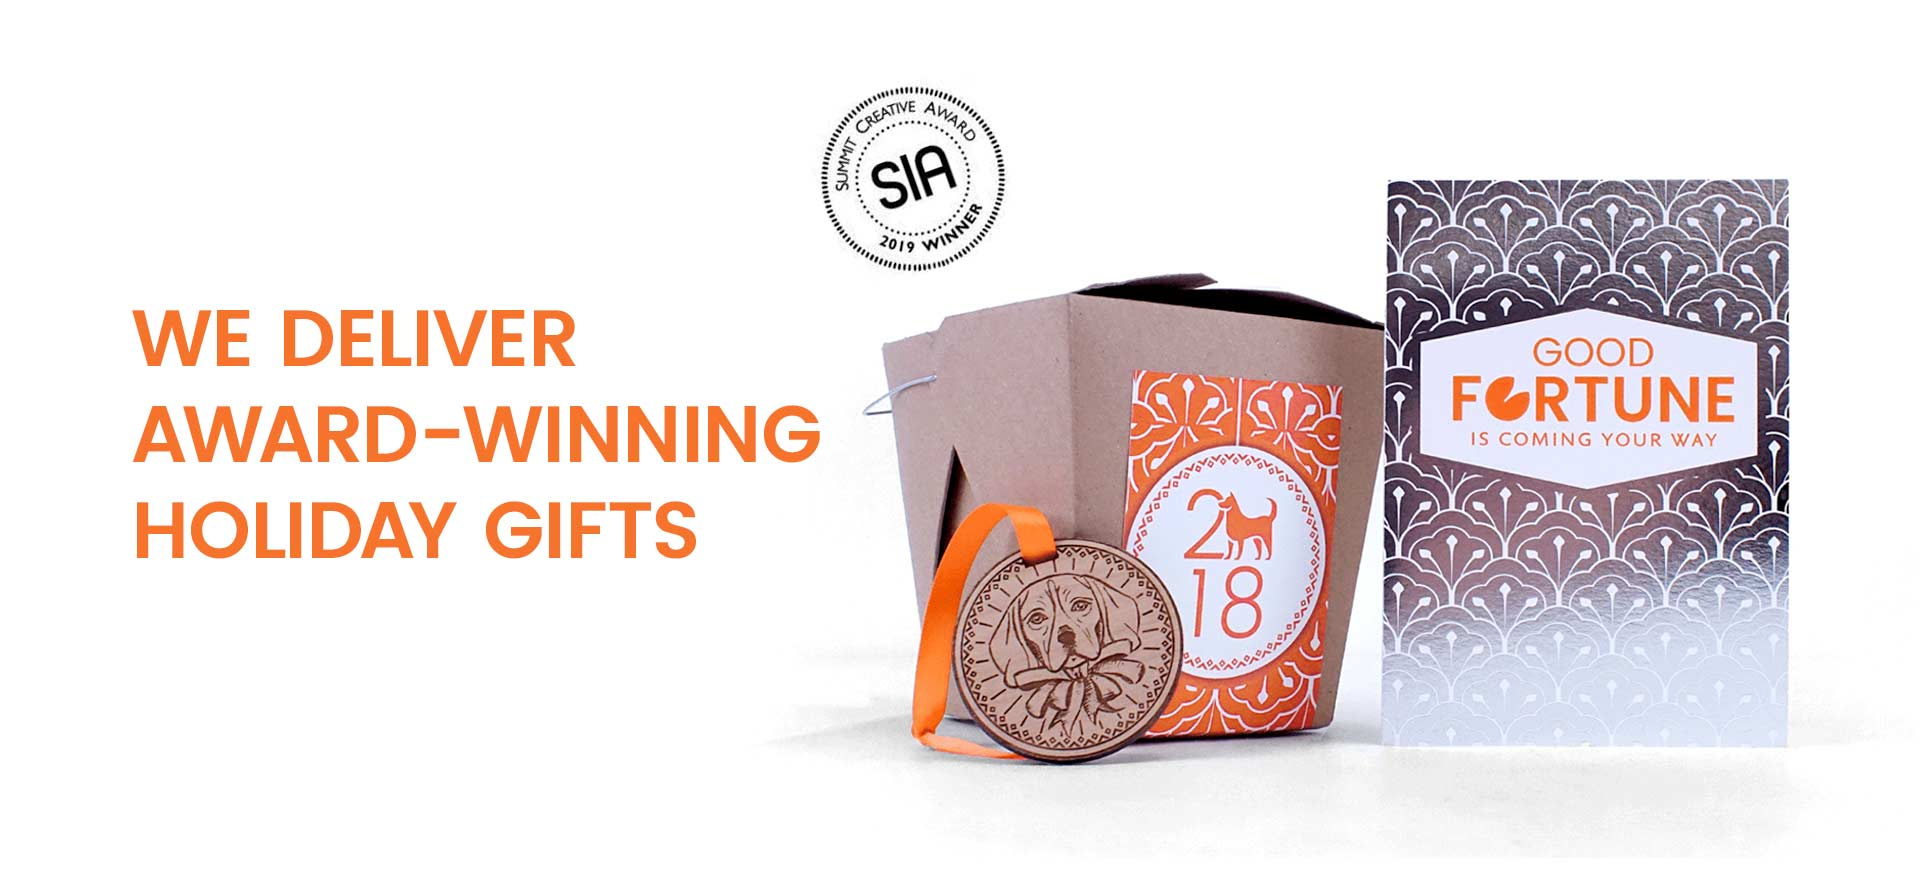 We deliver award-winning holiday gifts.